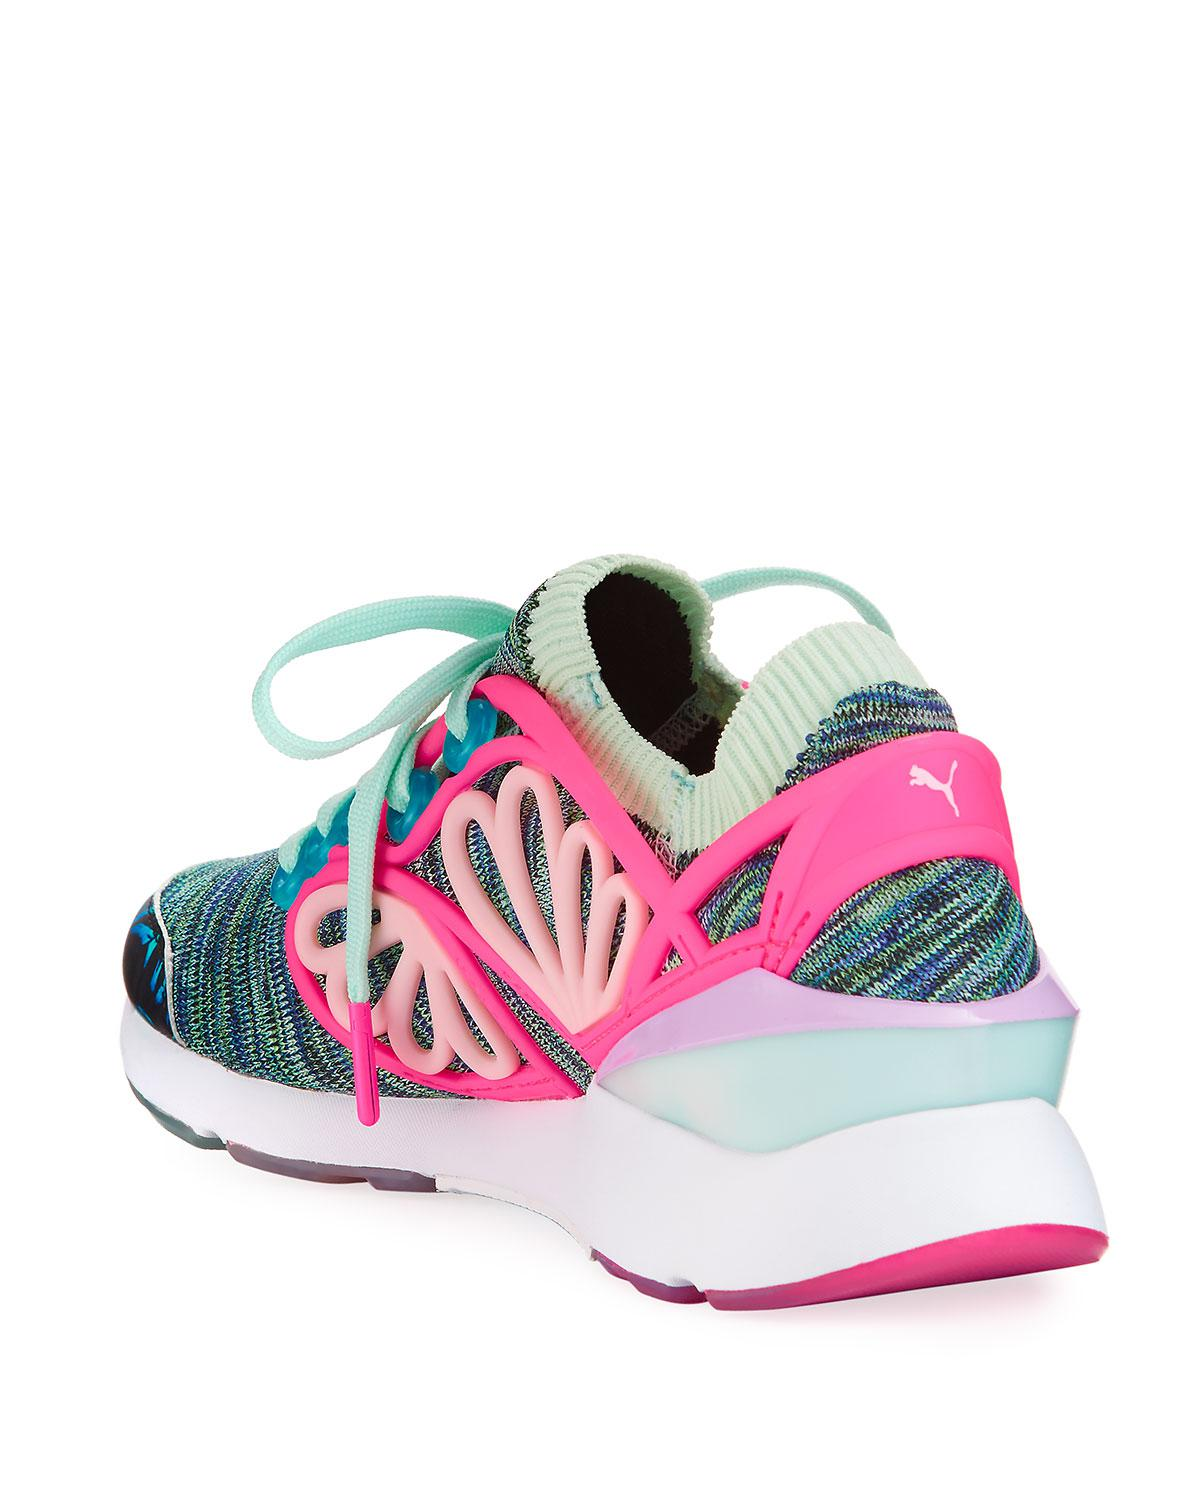 ... reduced lyst puma x sophia webster pearl cage graphic knit trainer  sneaker eb448 9f1d1 16d3d8767